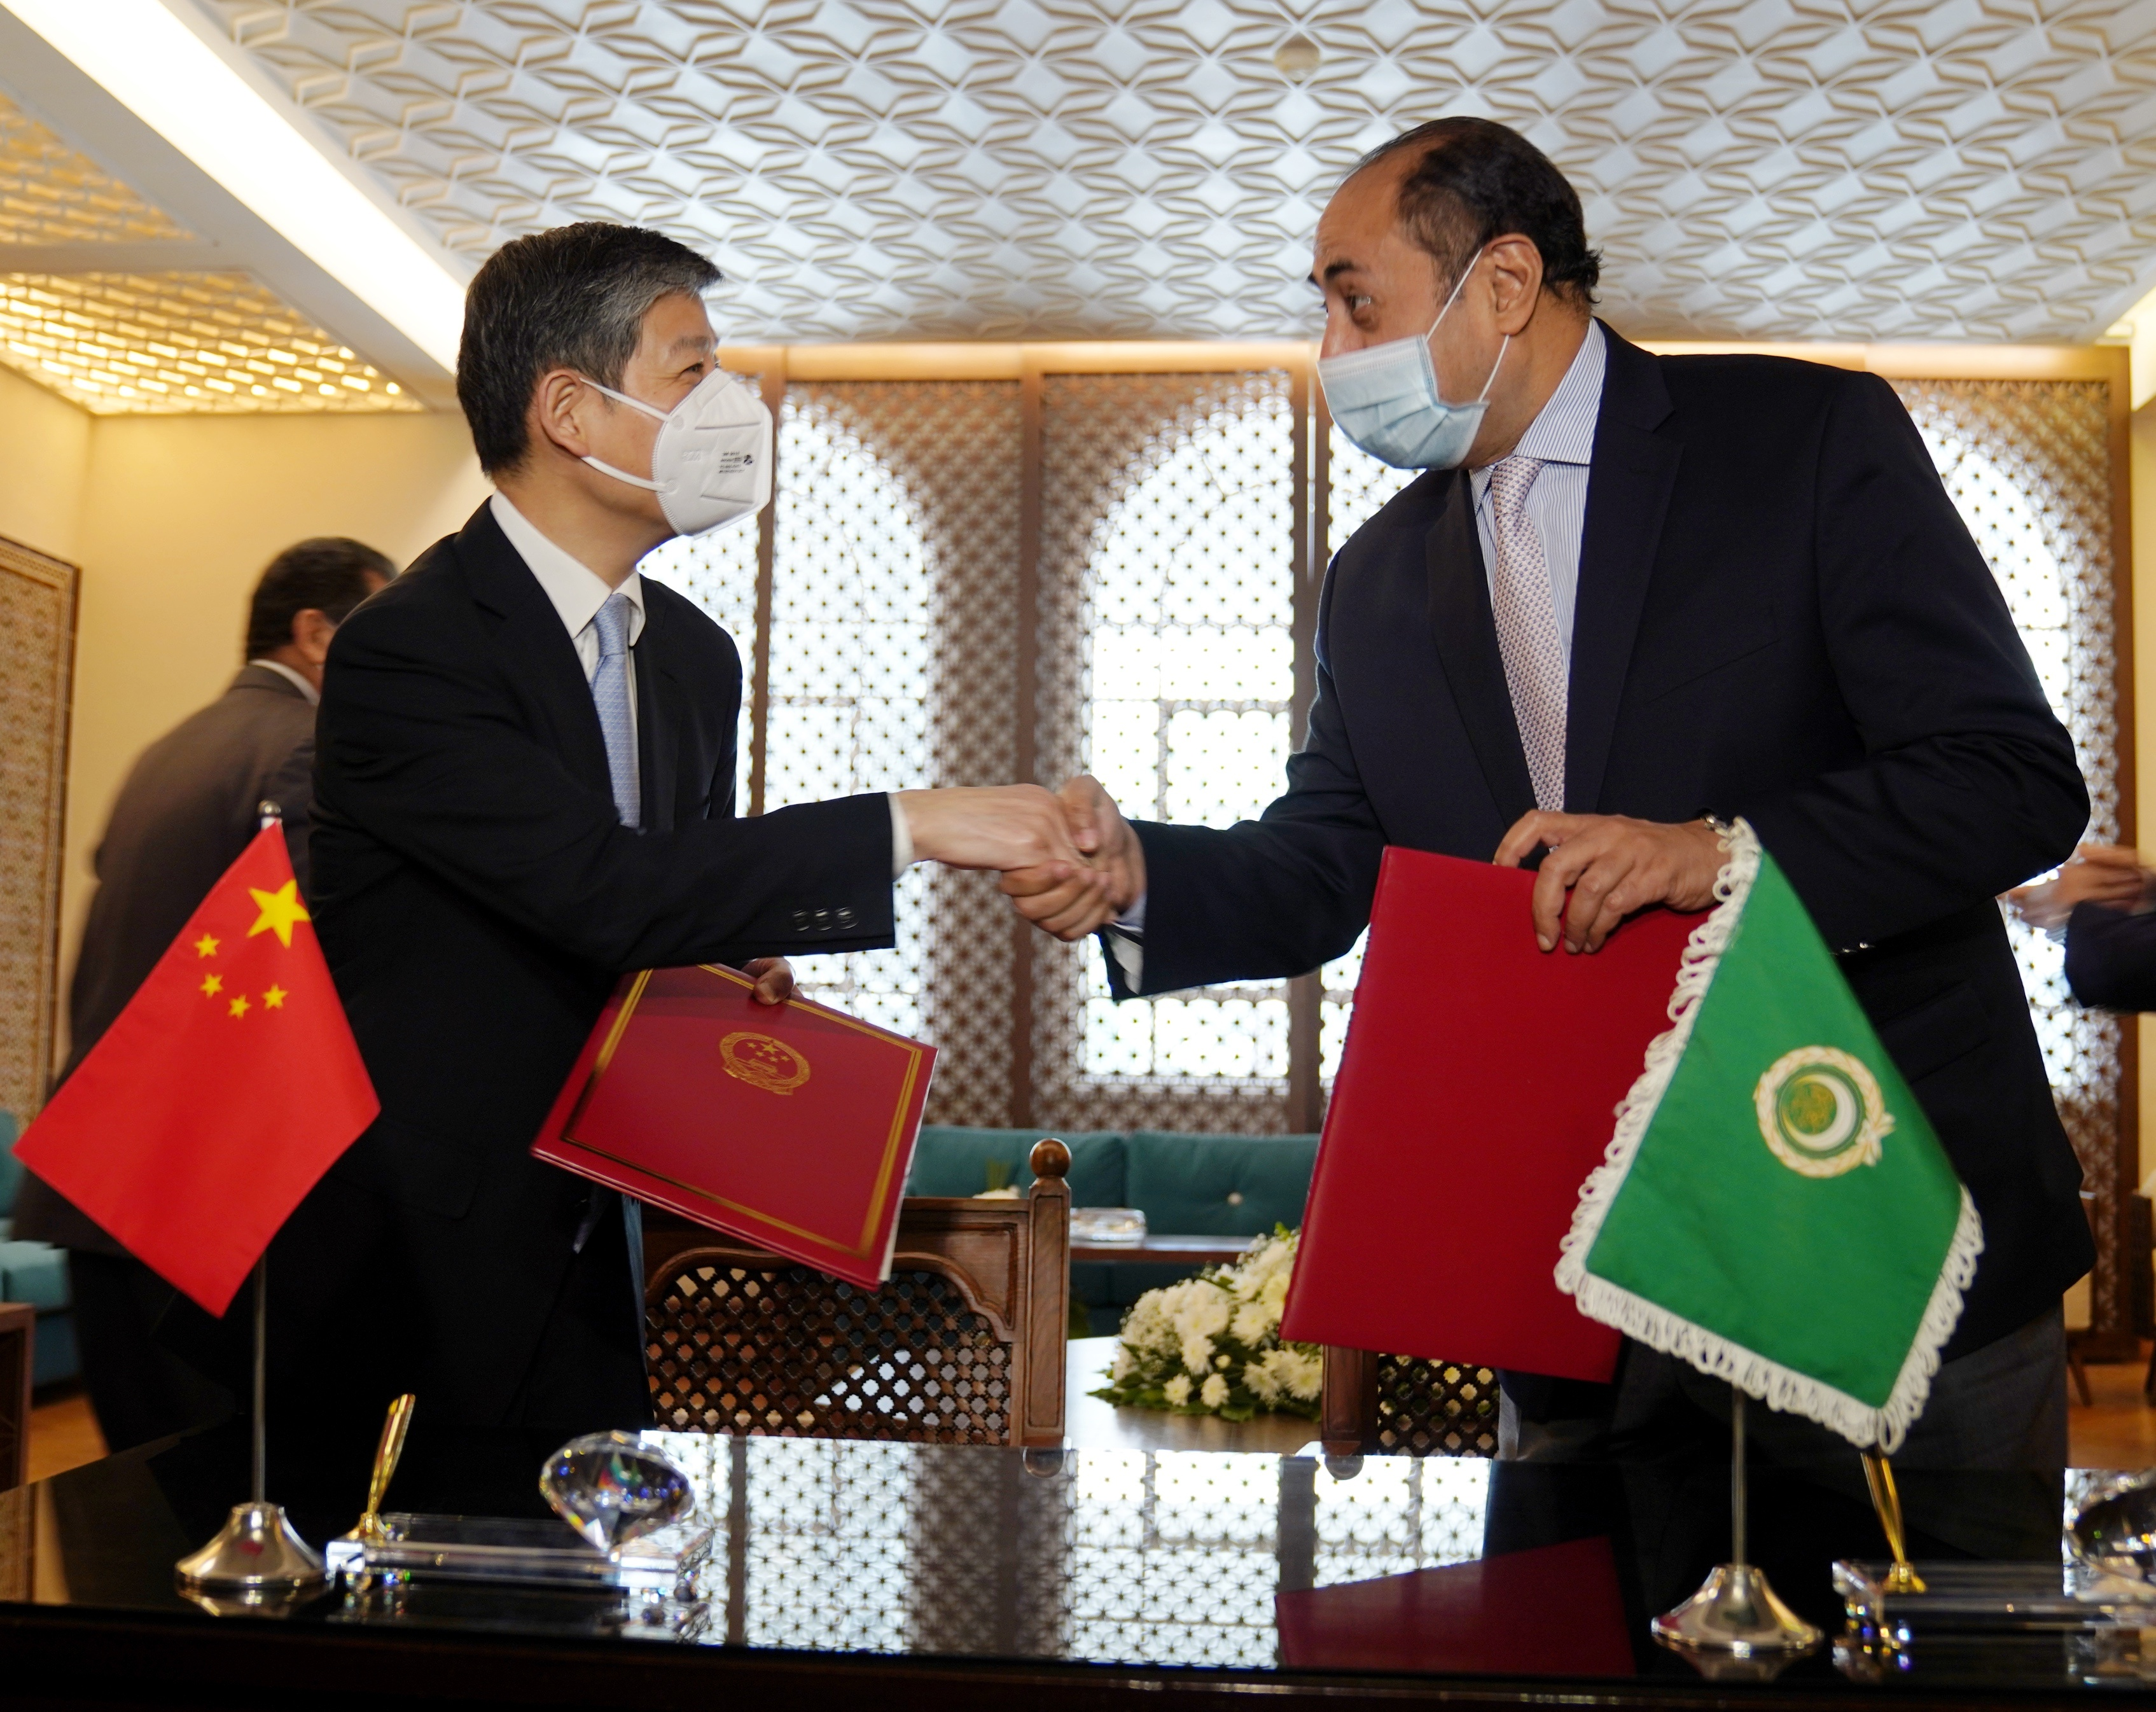 China provides COVID-19 vaccines to Arab countries